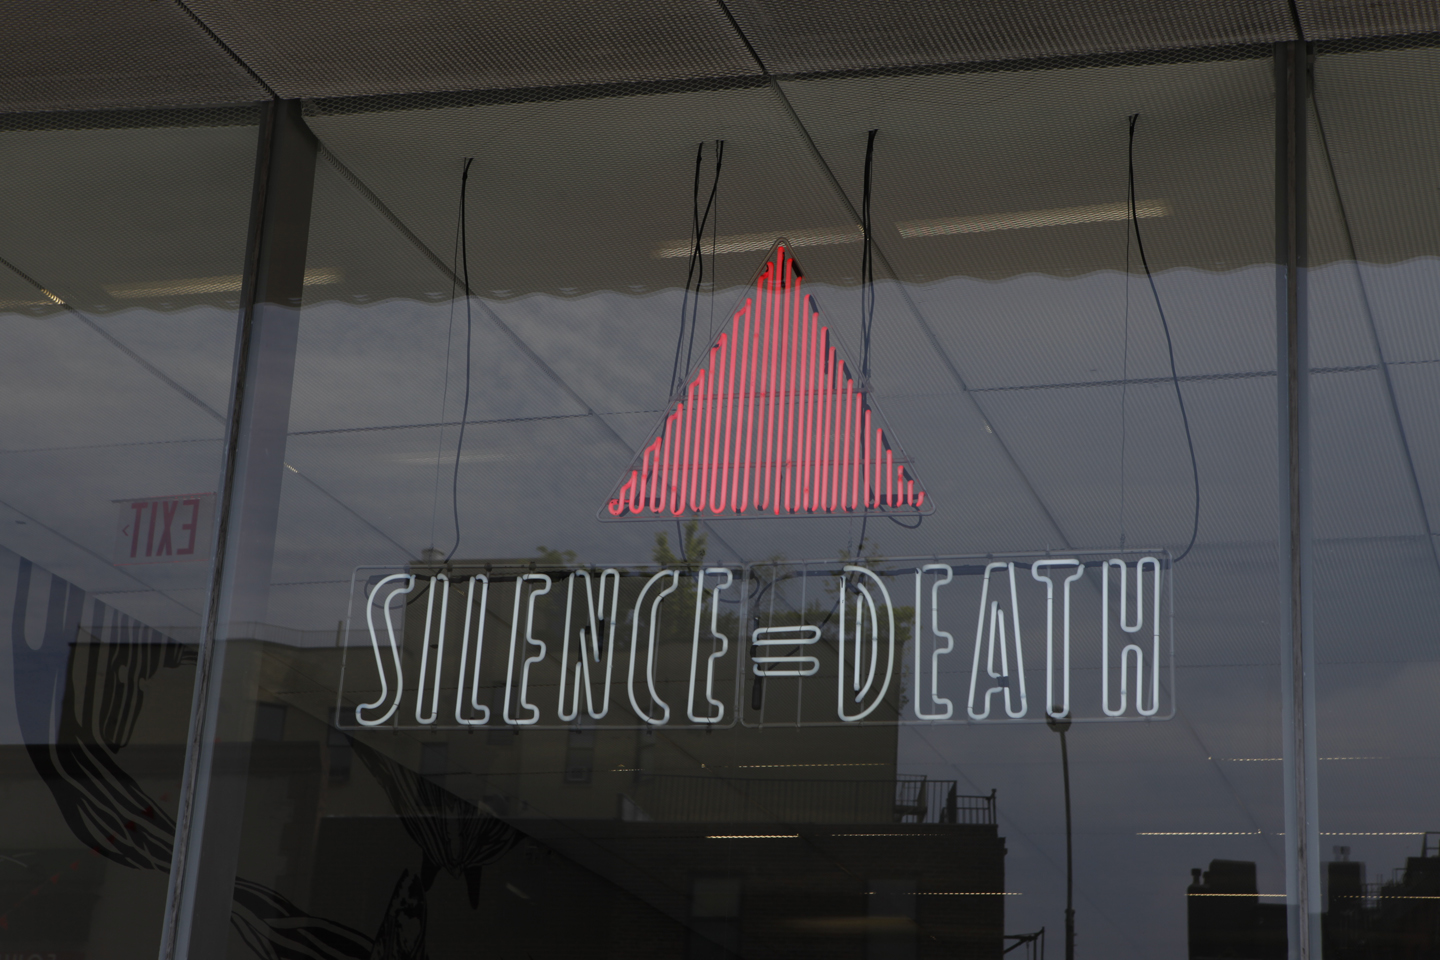 ACT UP (Gran Fury), ACT UP (Gran Fury) SILENCE=DEATH installation view at New Museum, New York, 2012. Collection New Museum of Contemporary Art, New York; William Olander Memorial Fund. Courtesy: New Museum, New York. Photo: New Museum